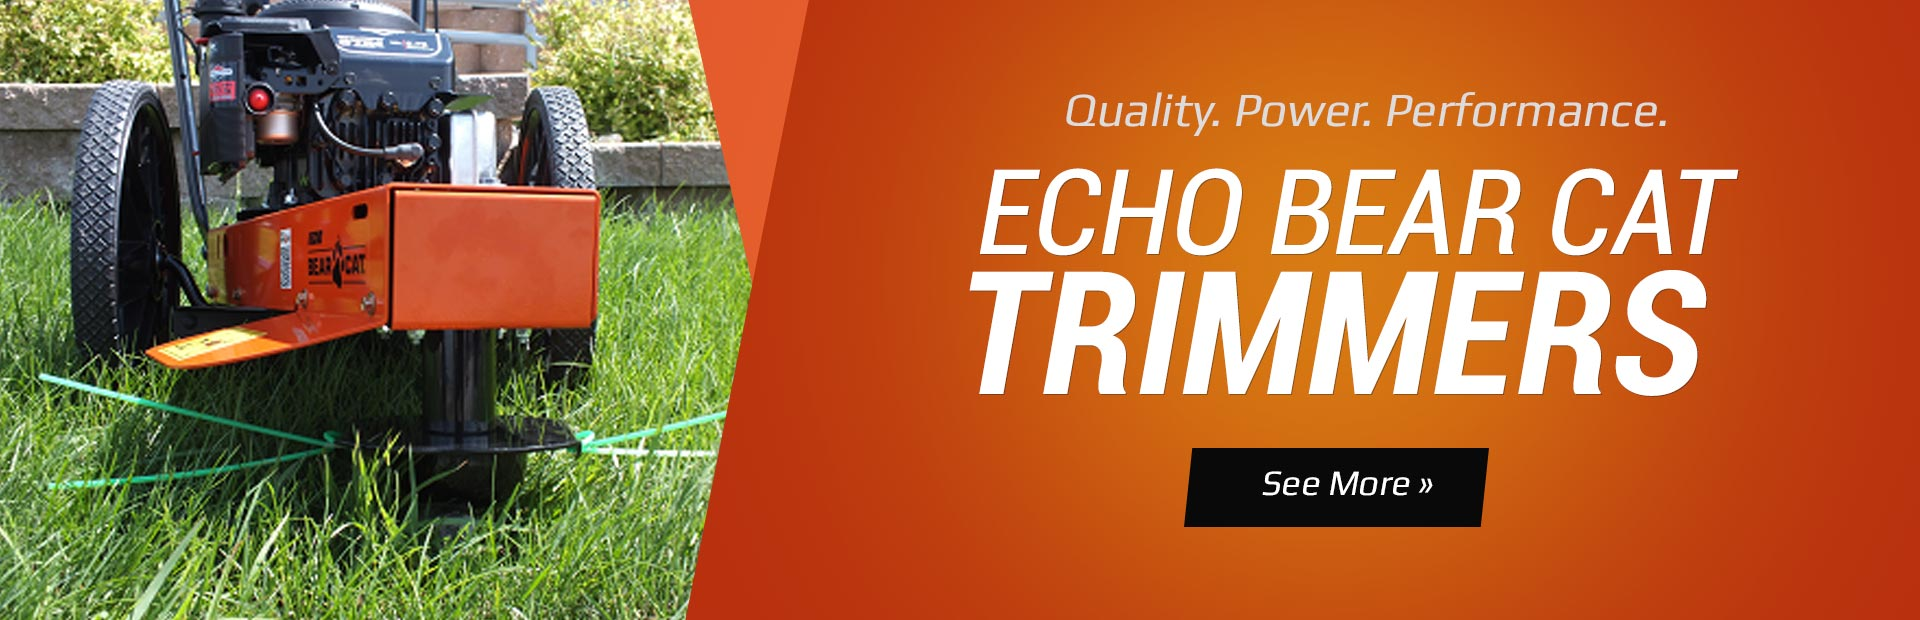 ECHO Bear Cat Trimmers: Click here to view the models.